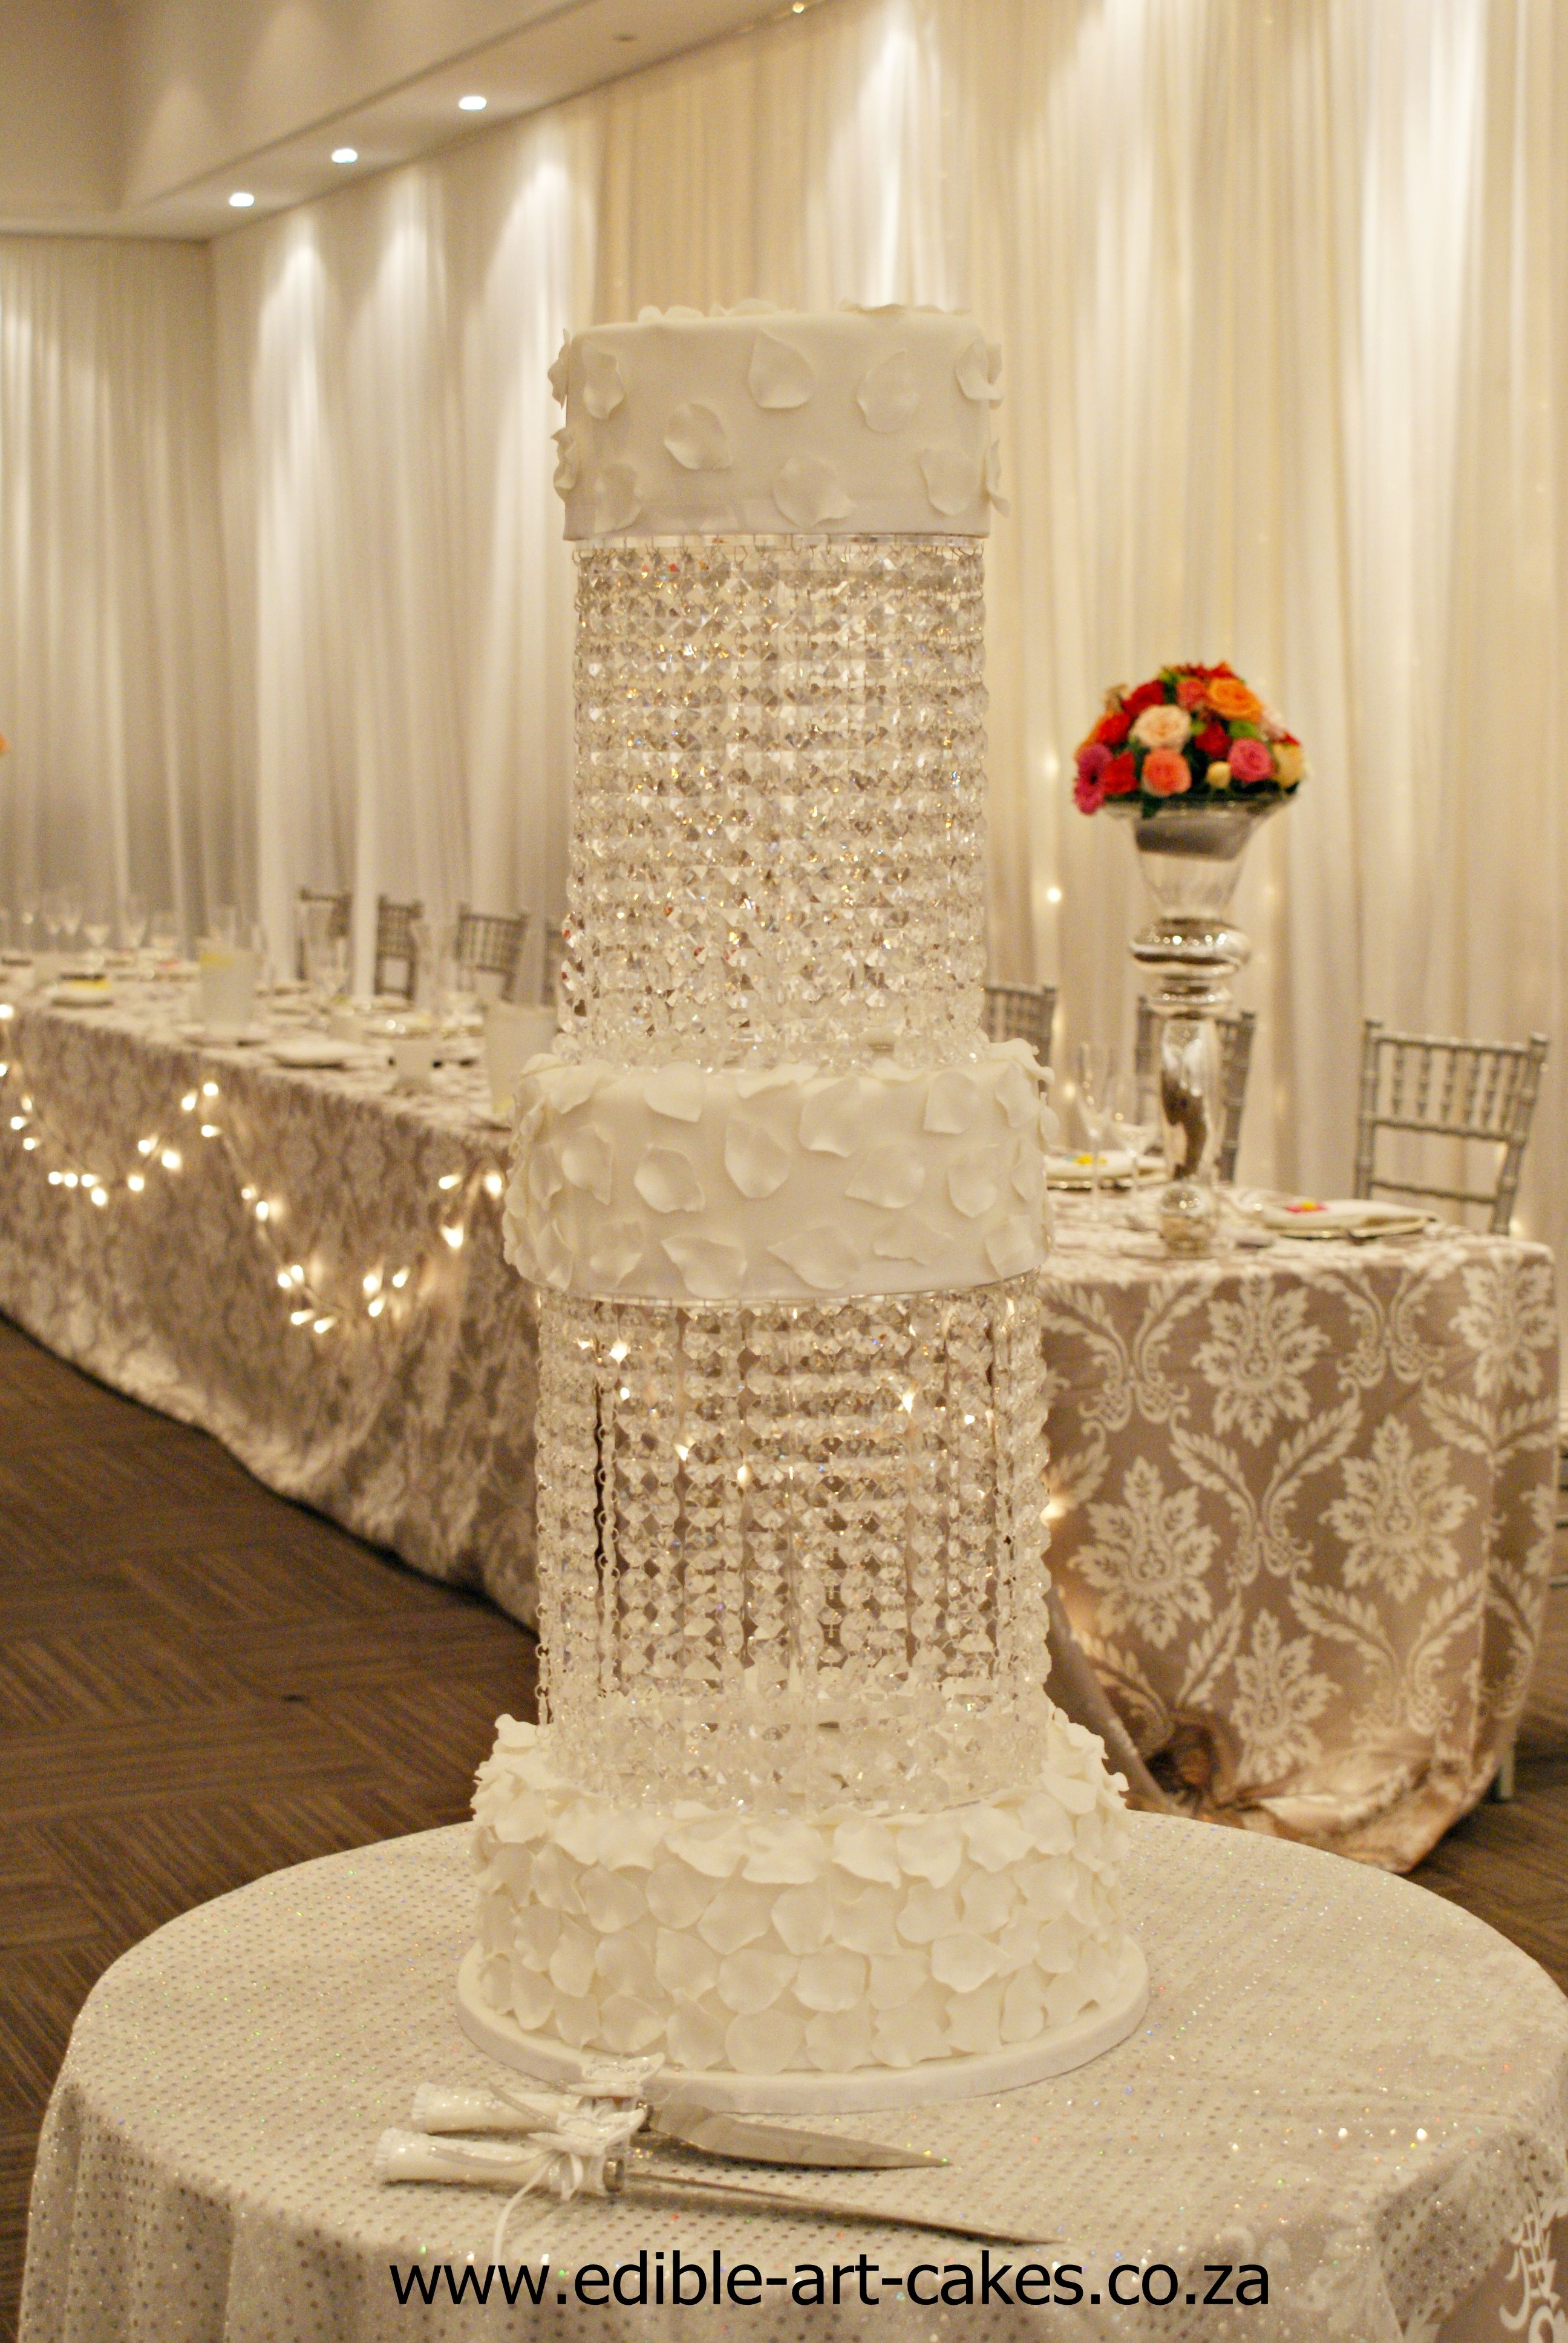 Edible Crystals for Wedding Cakes submited images